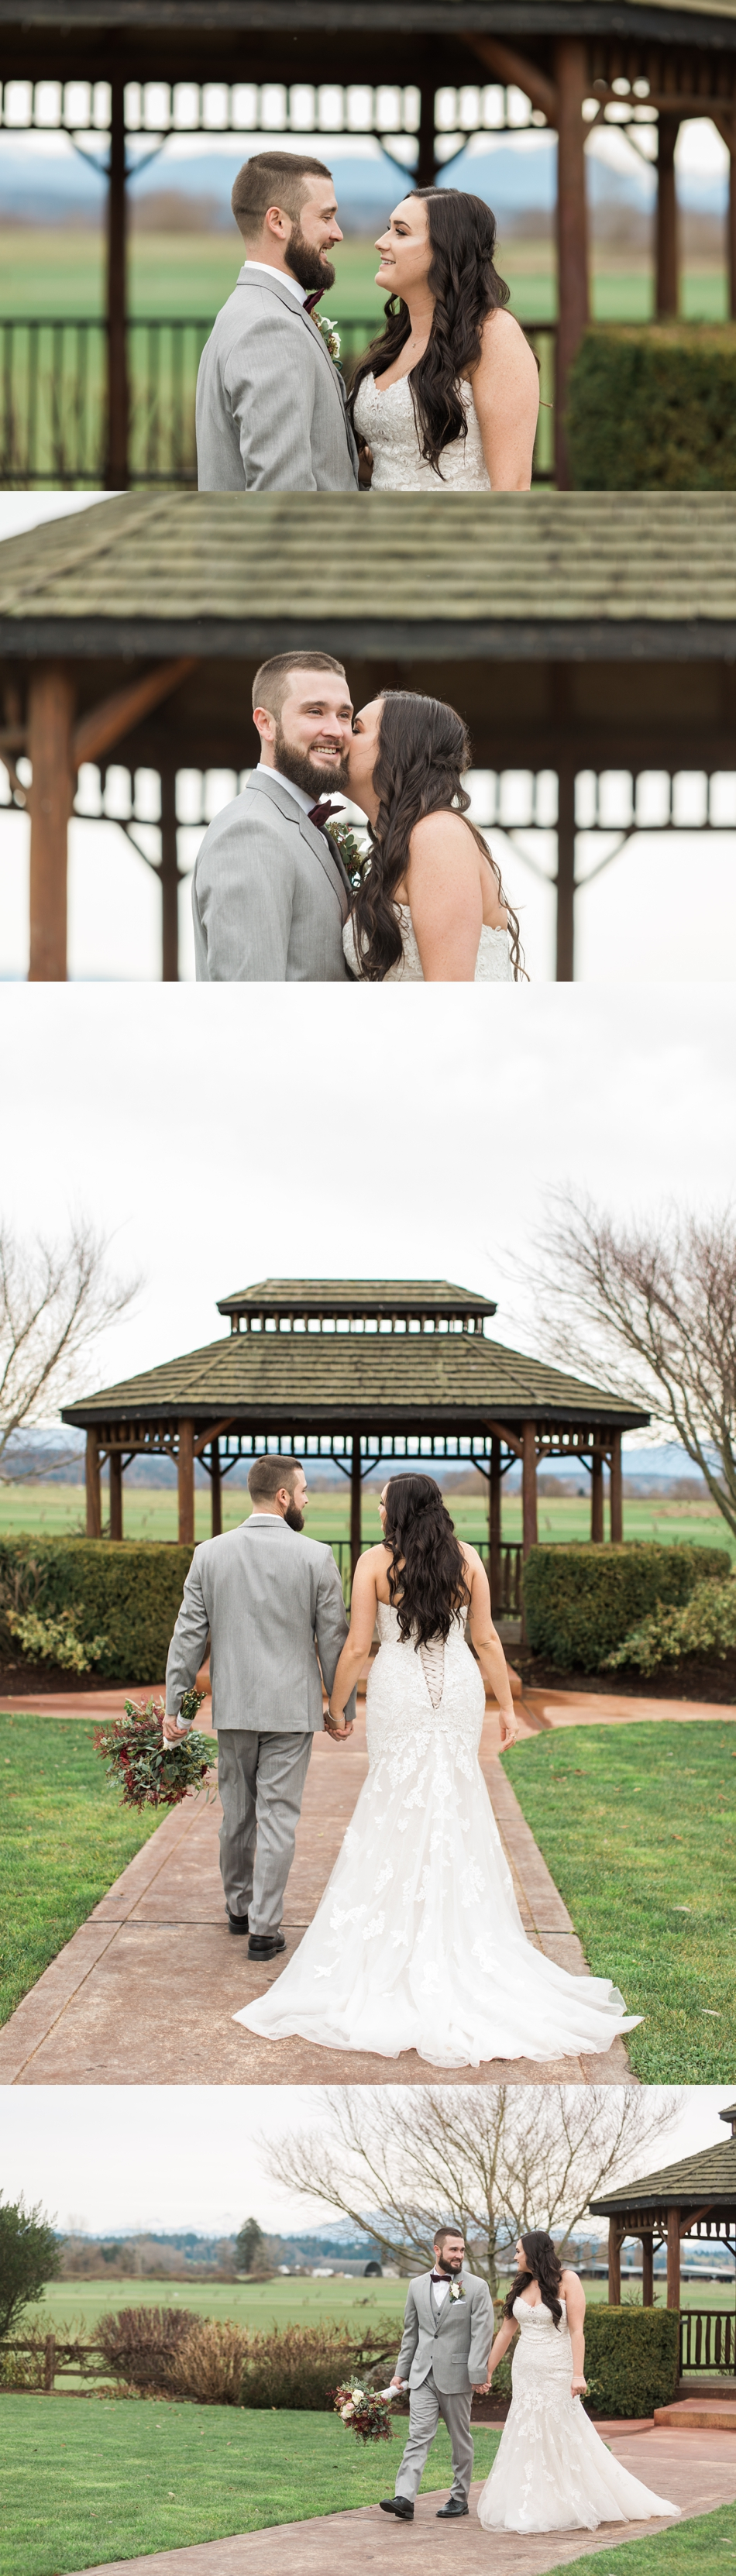 Photos of a bride and groom holding hands and kissing before their winter wedding at Hidden Meadows in Snohomish, a wedding venue near Seattle, WA. | Joanna Monger Photography | Snohomish & Seattle Wedding Photographer